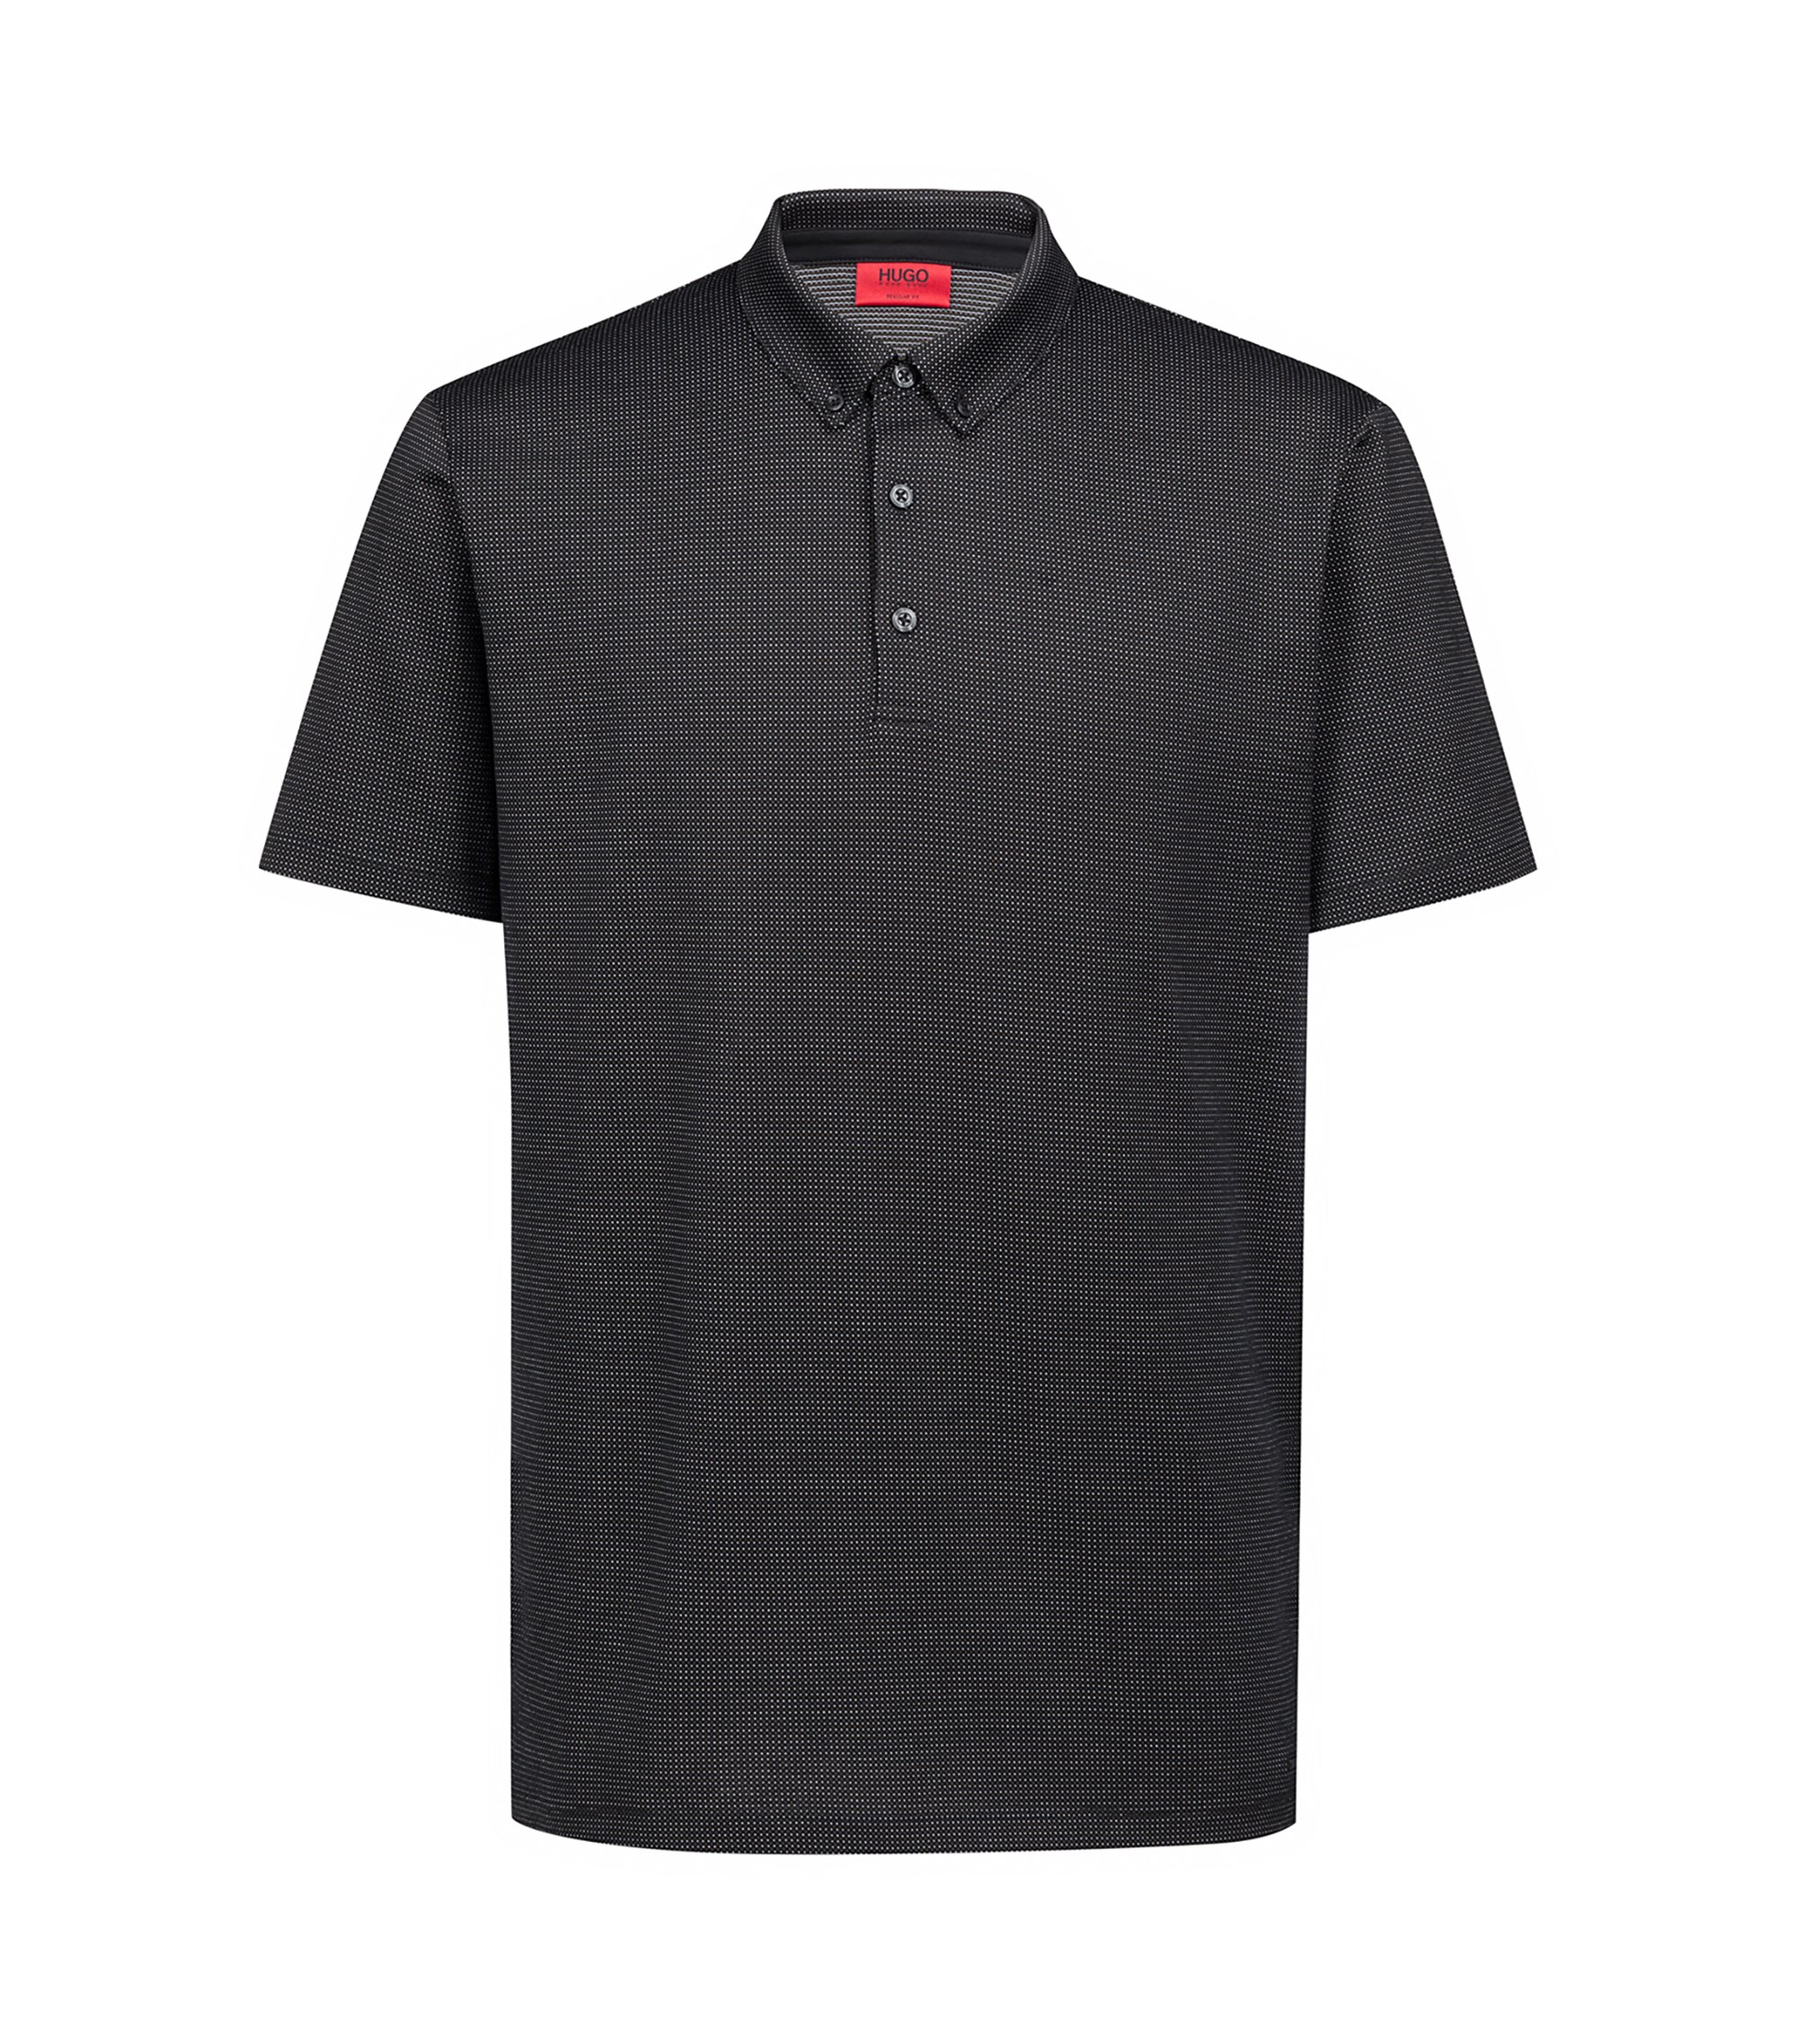 Regular-fit polo shirt in mercerized micro jacquard, Black